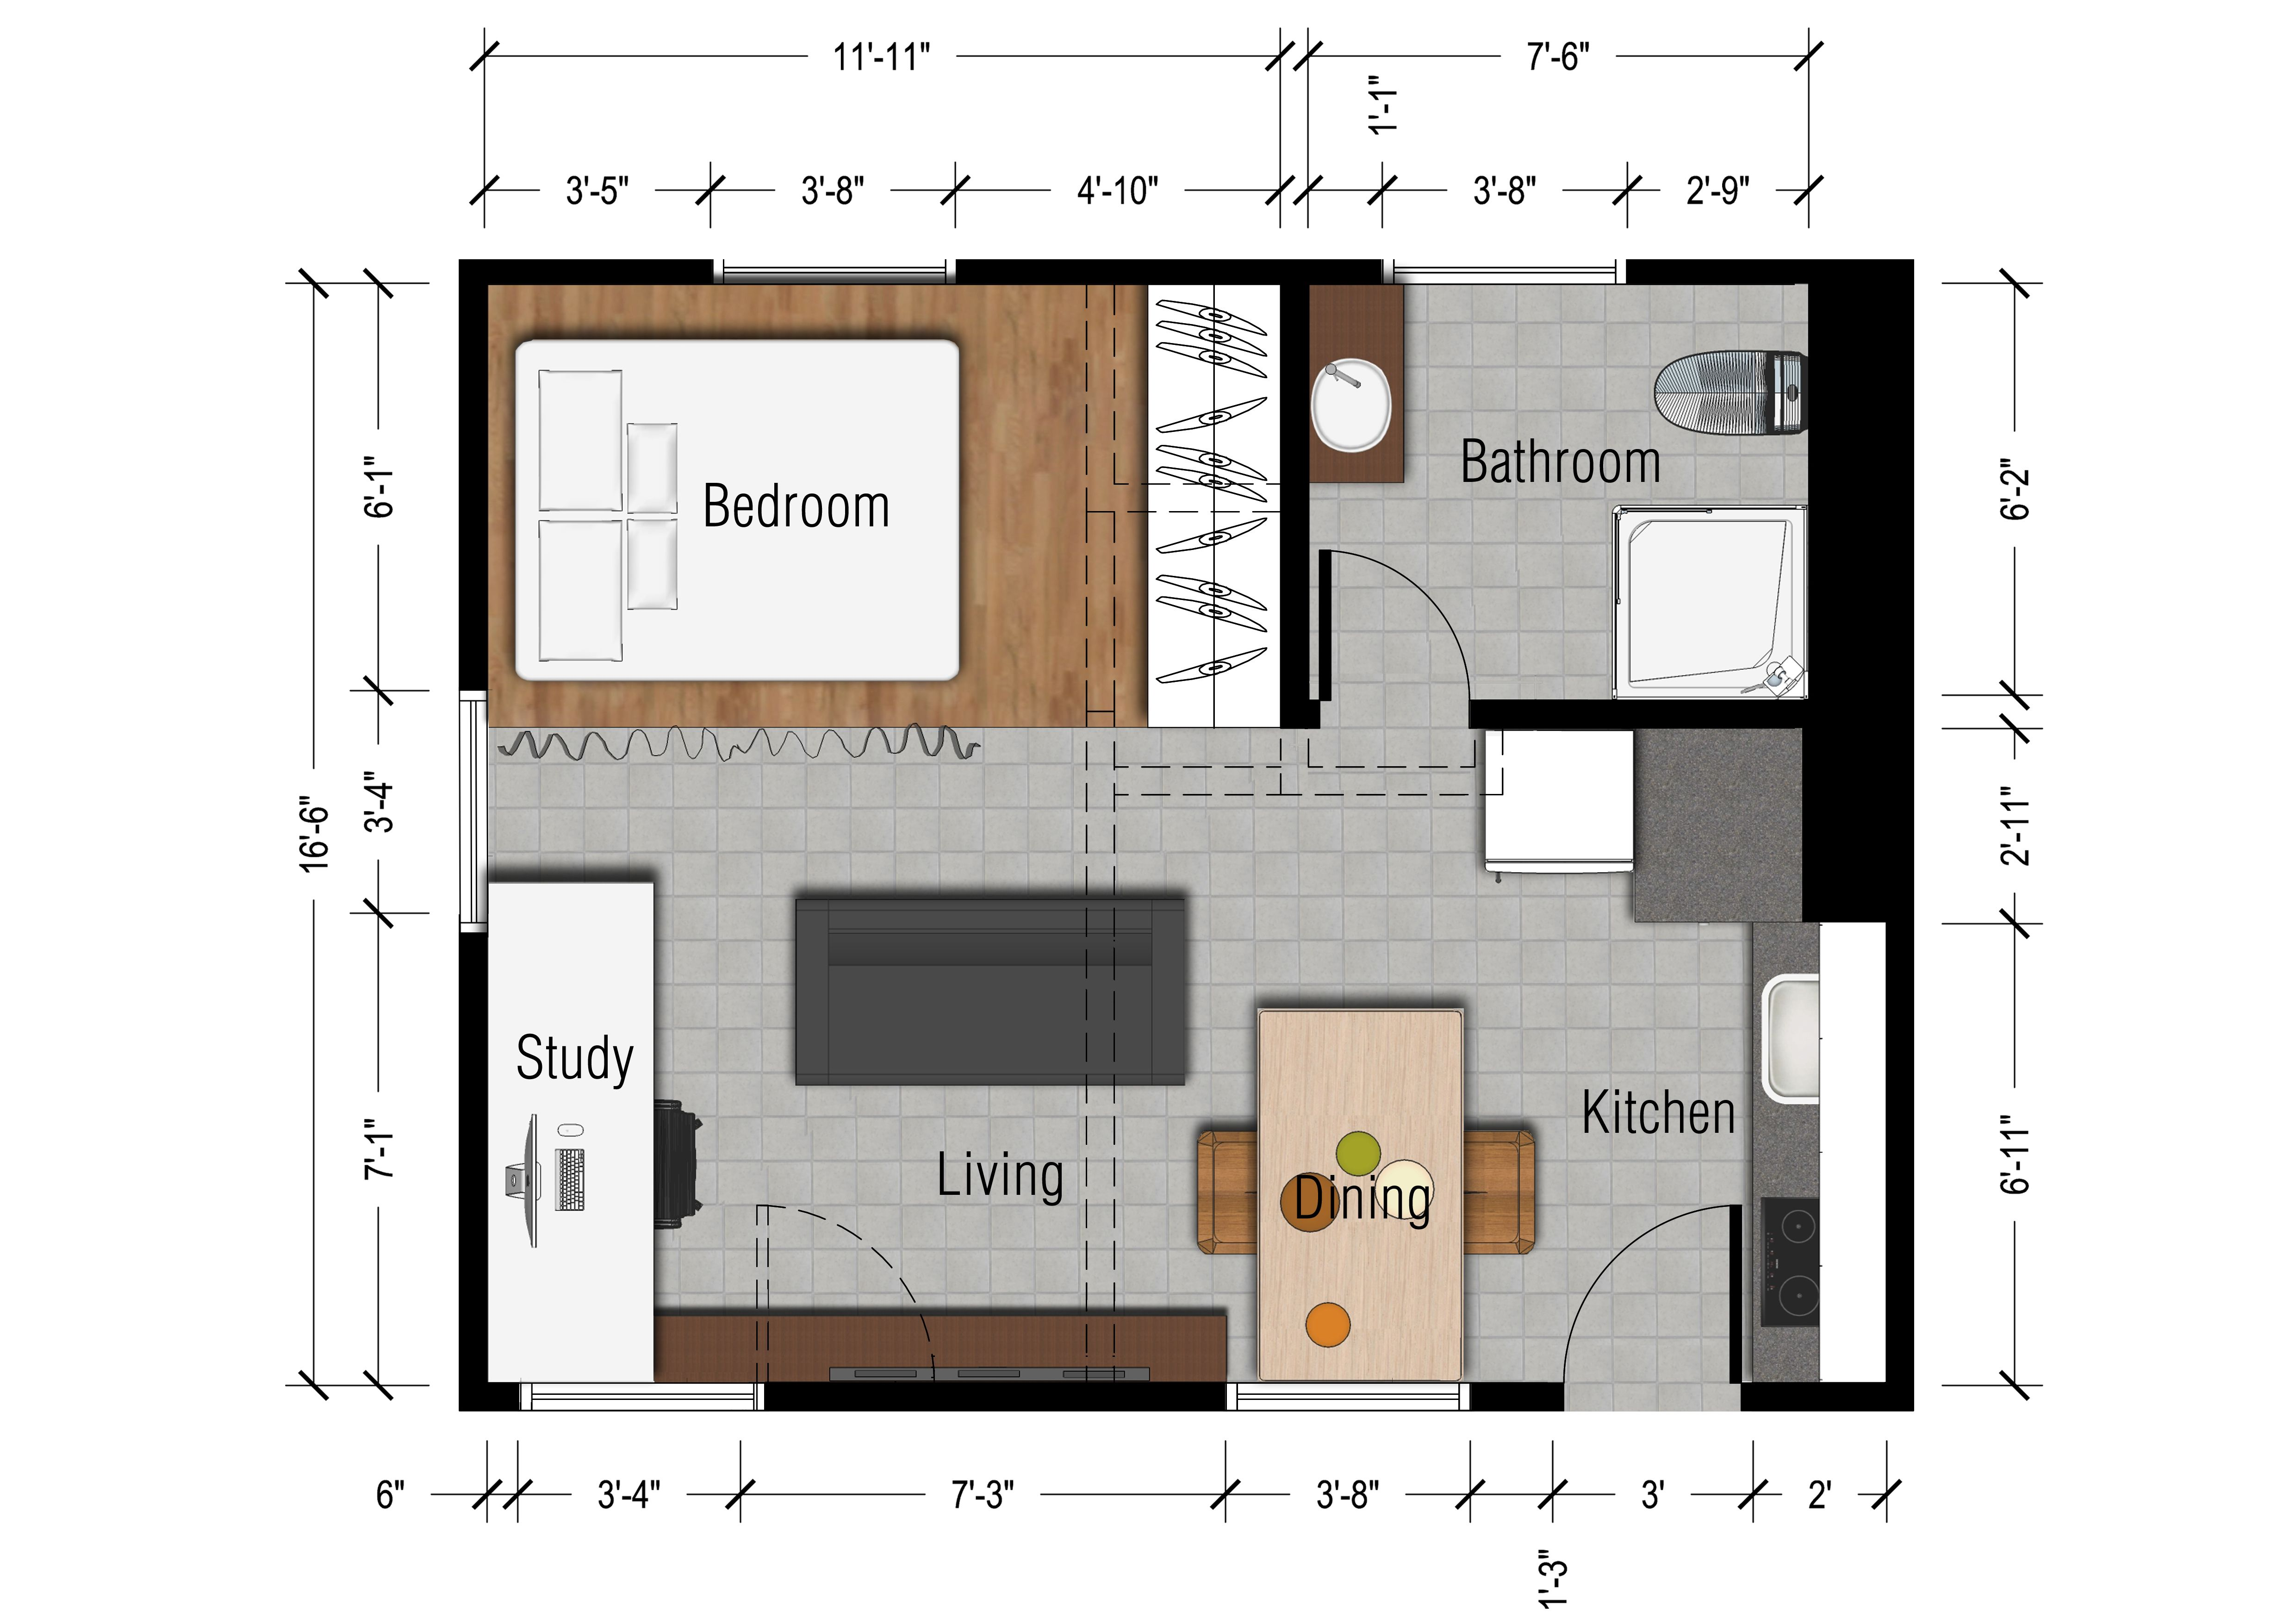 studio apartments floor plan 300 square feet | Location ...